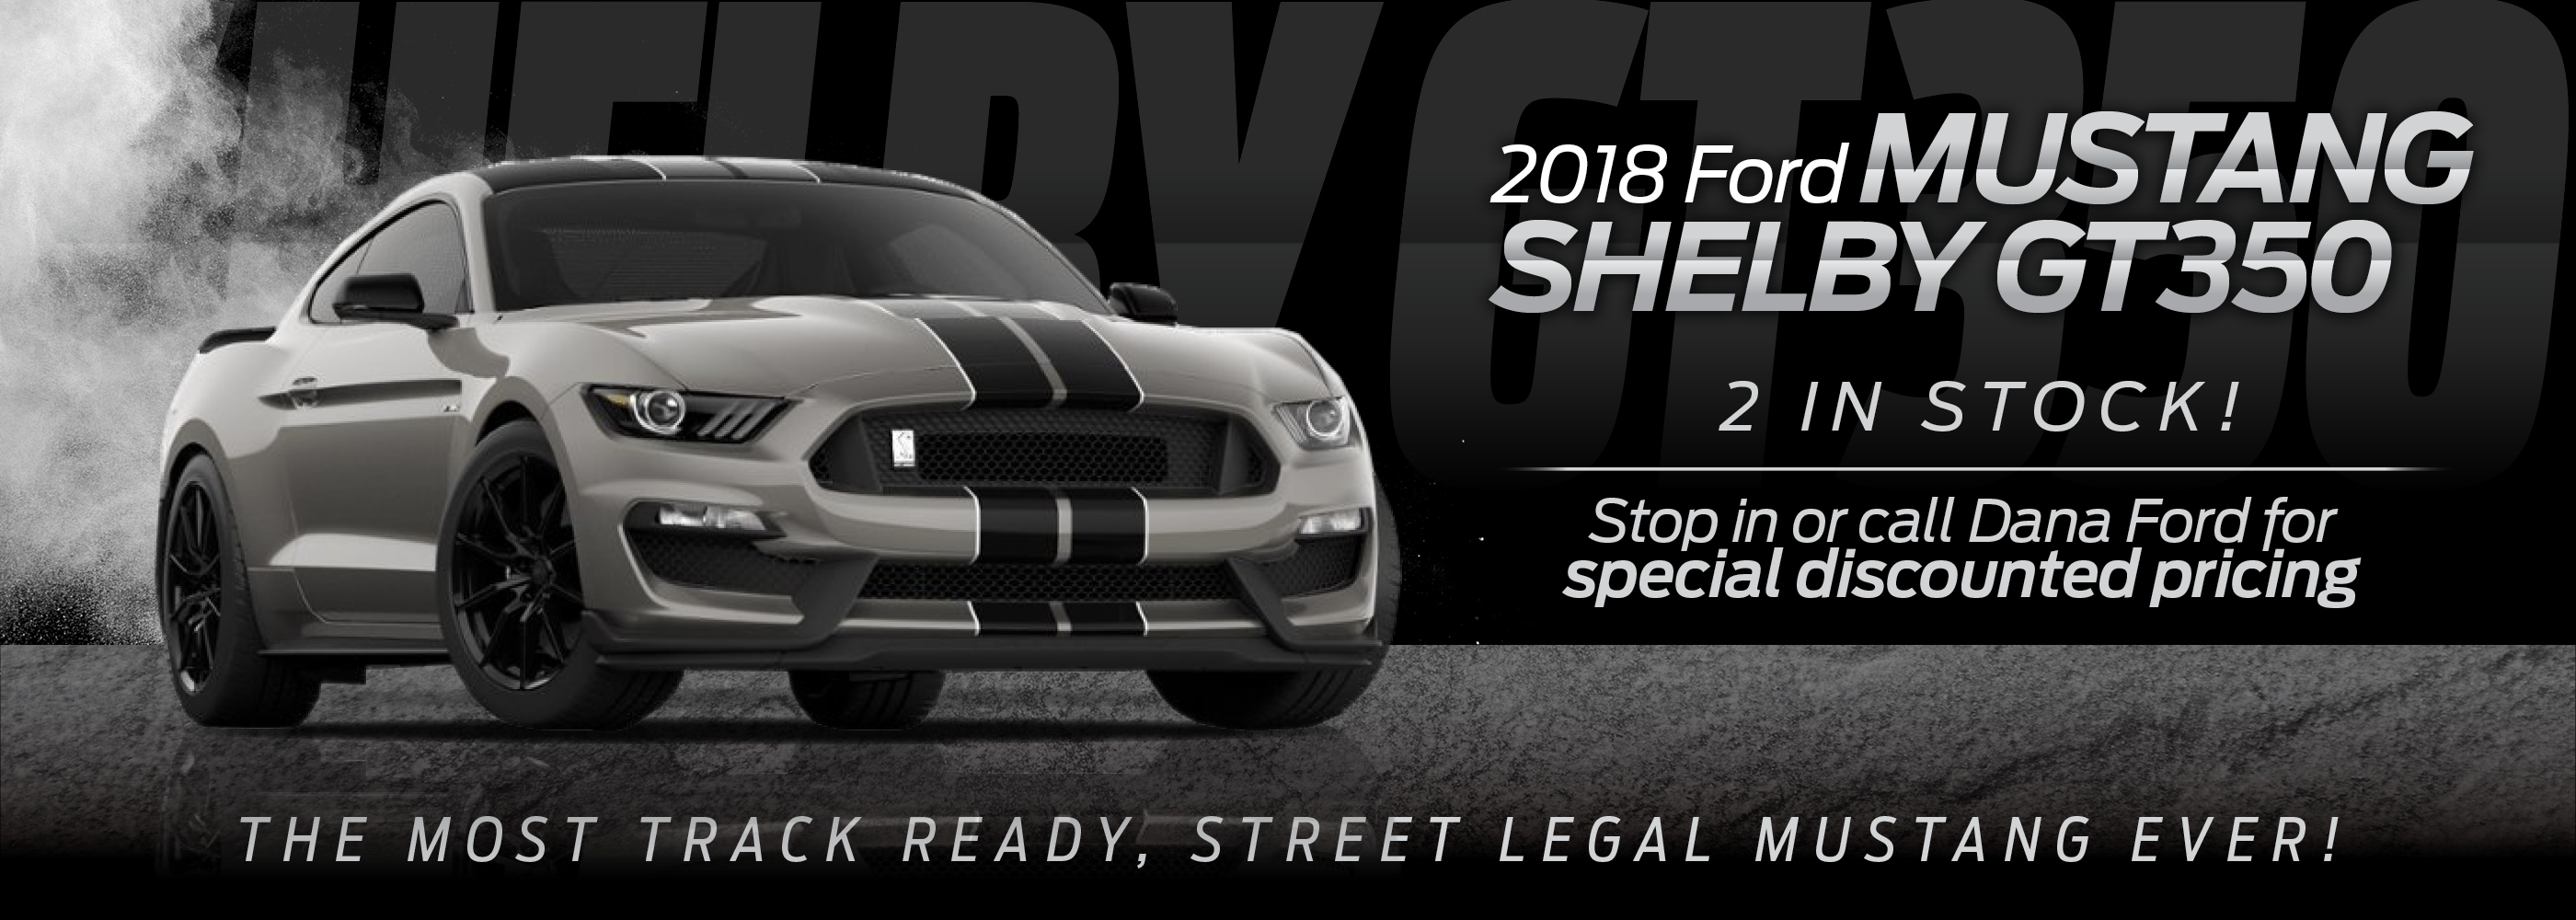 DLM-3756-Shelby-Banner-2800x1000